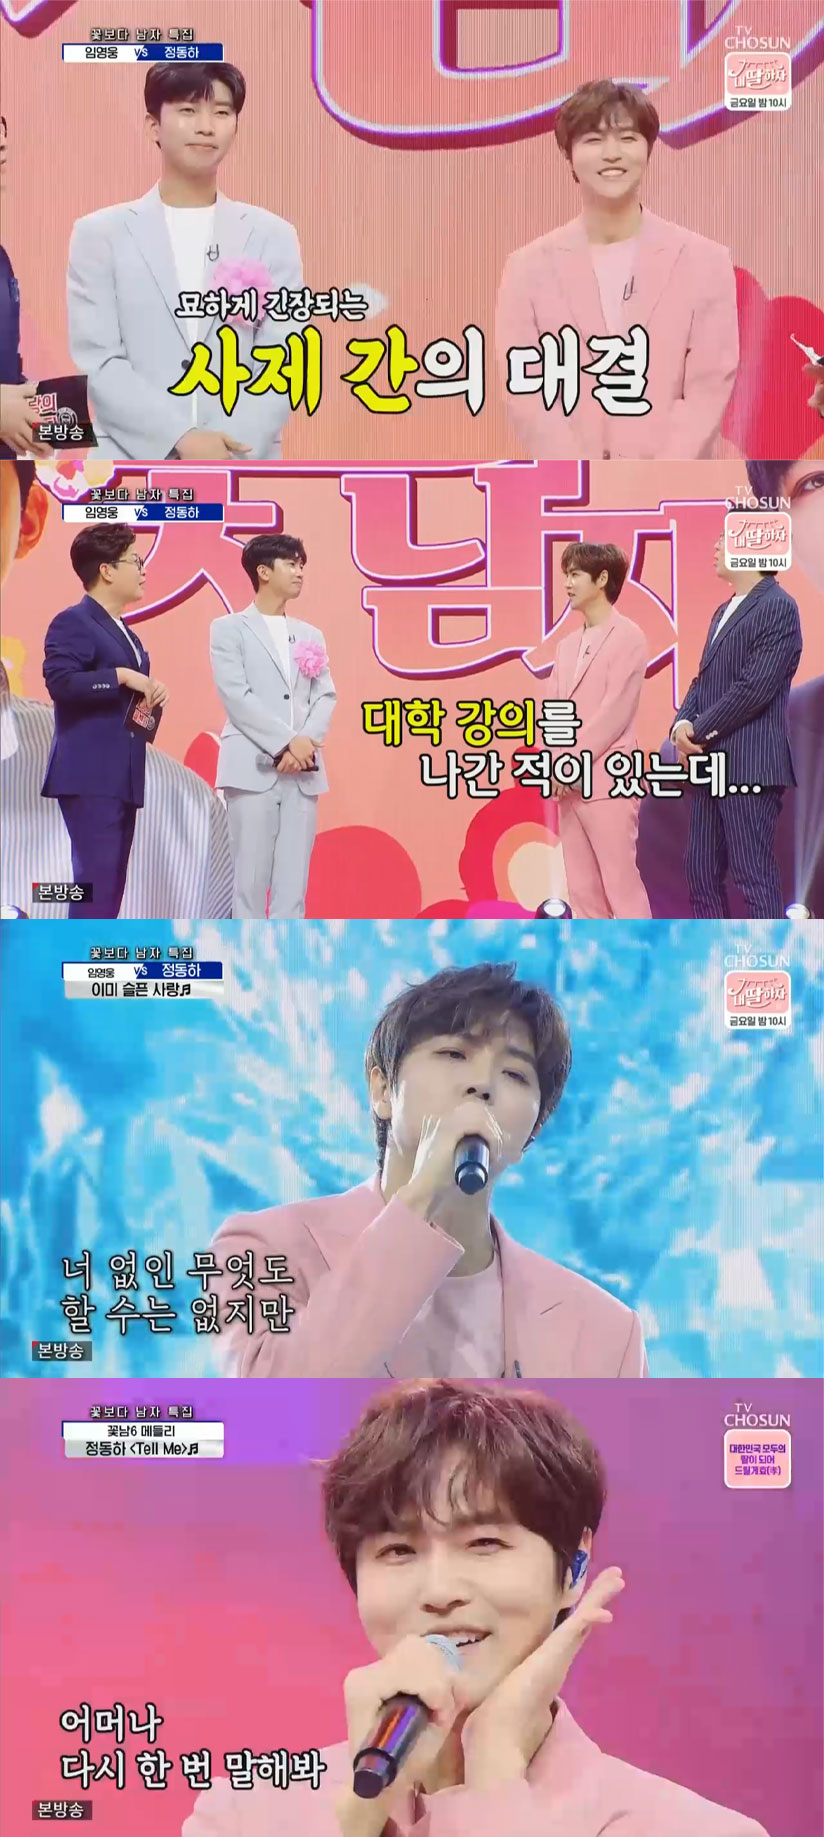 """Jeong Dong-ha """"Seriously, Lim Young-woong, there is no choice but to be good.. Shining singer"""" Love's call center confrontation testimony [★NEWSing]"""